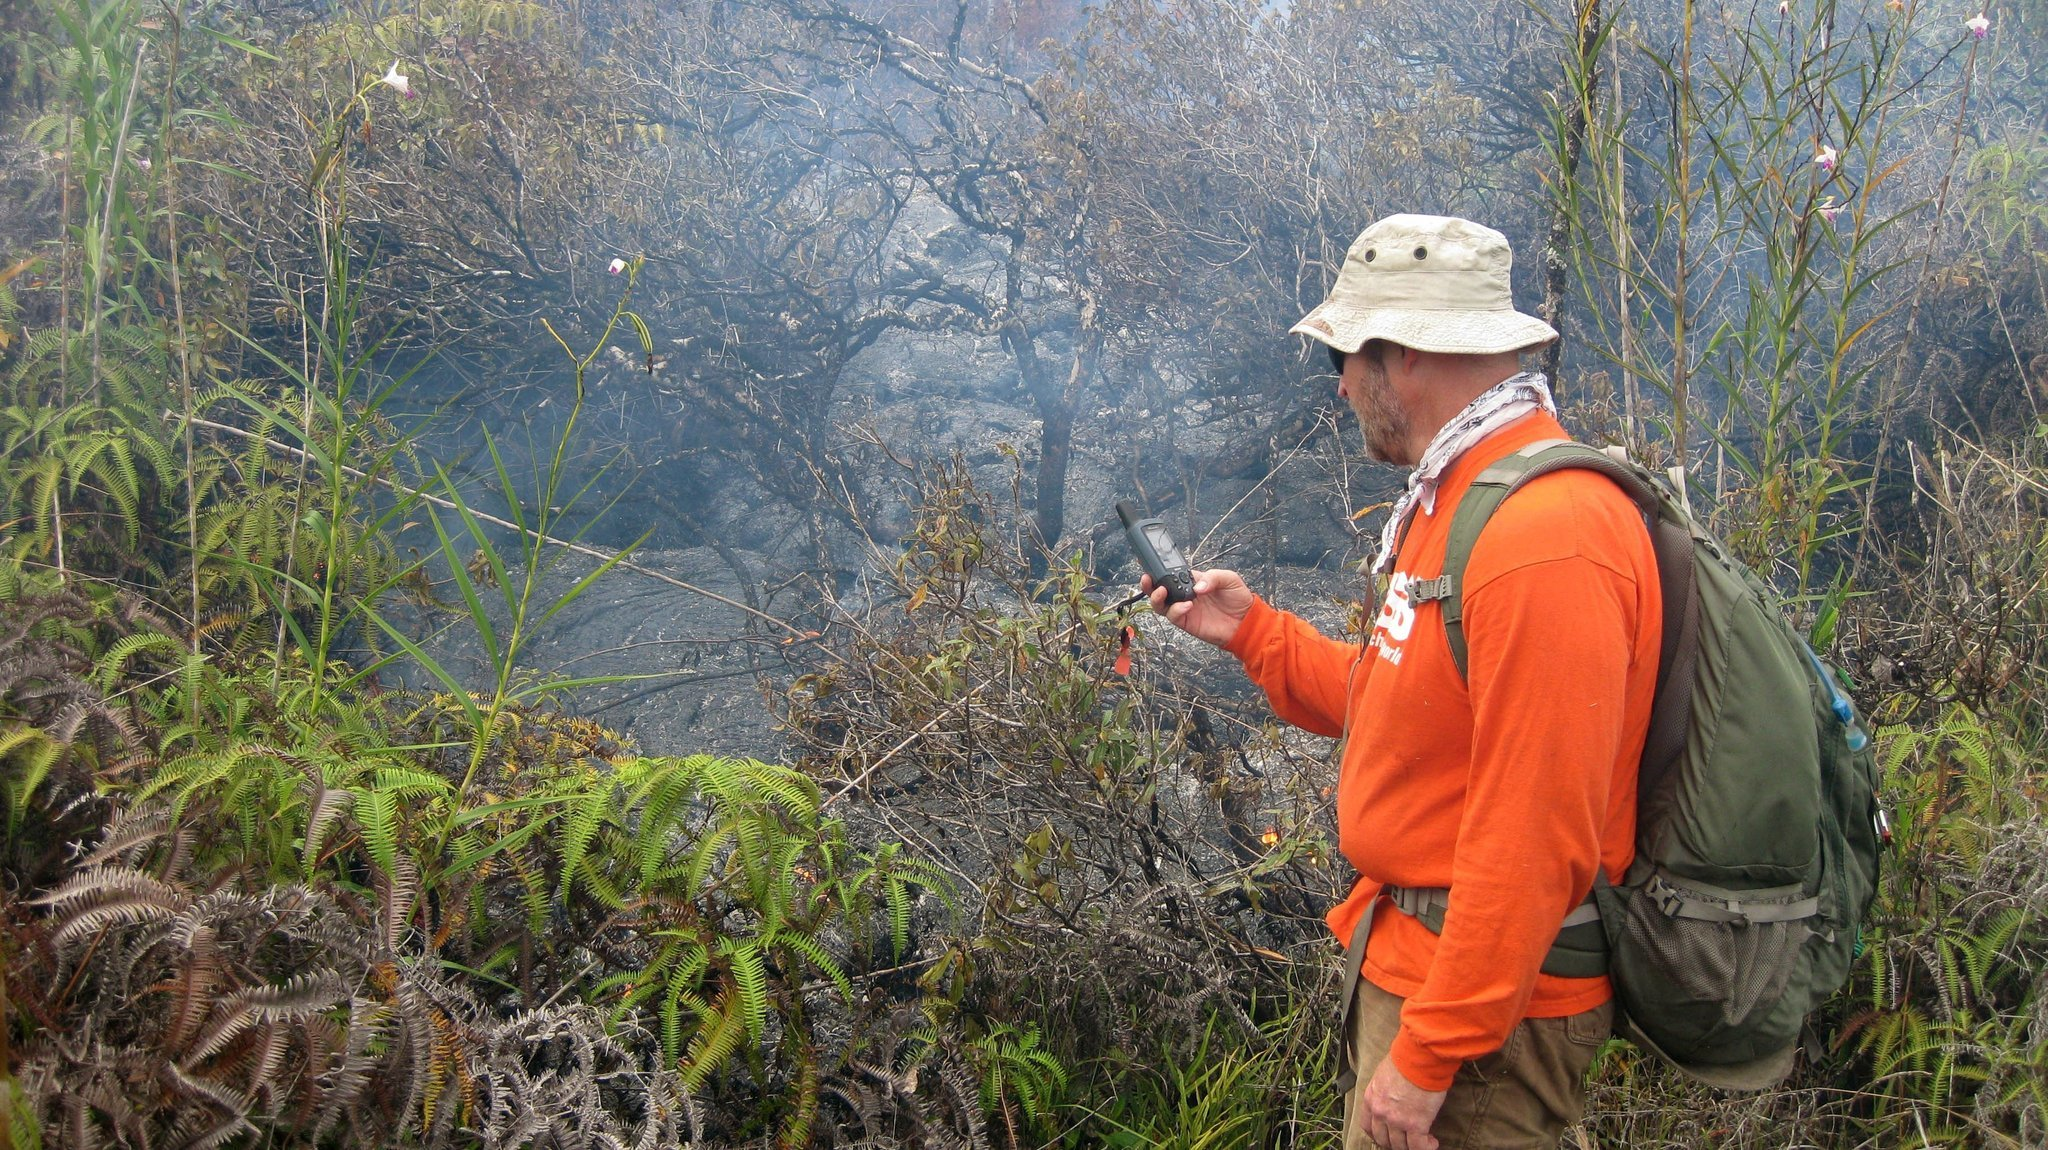 On the Big Island, volcanic activity could worsen respiratory problems